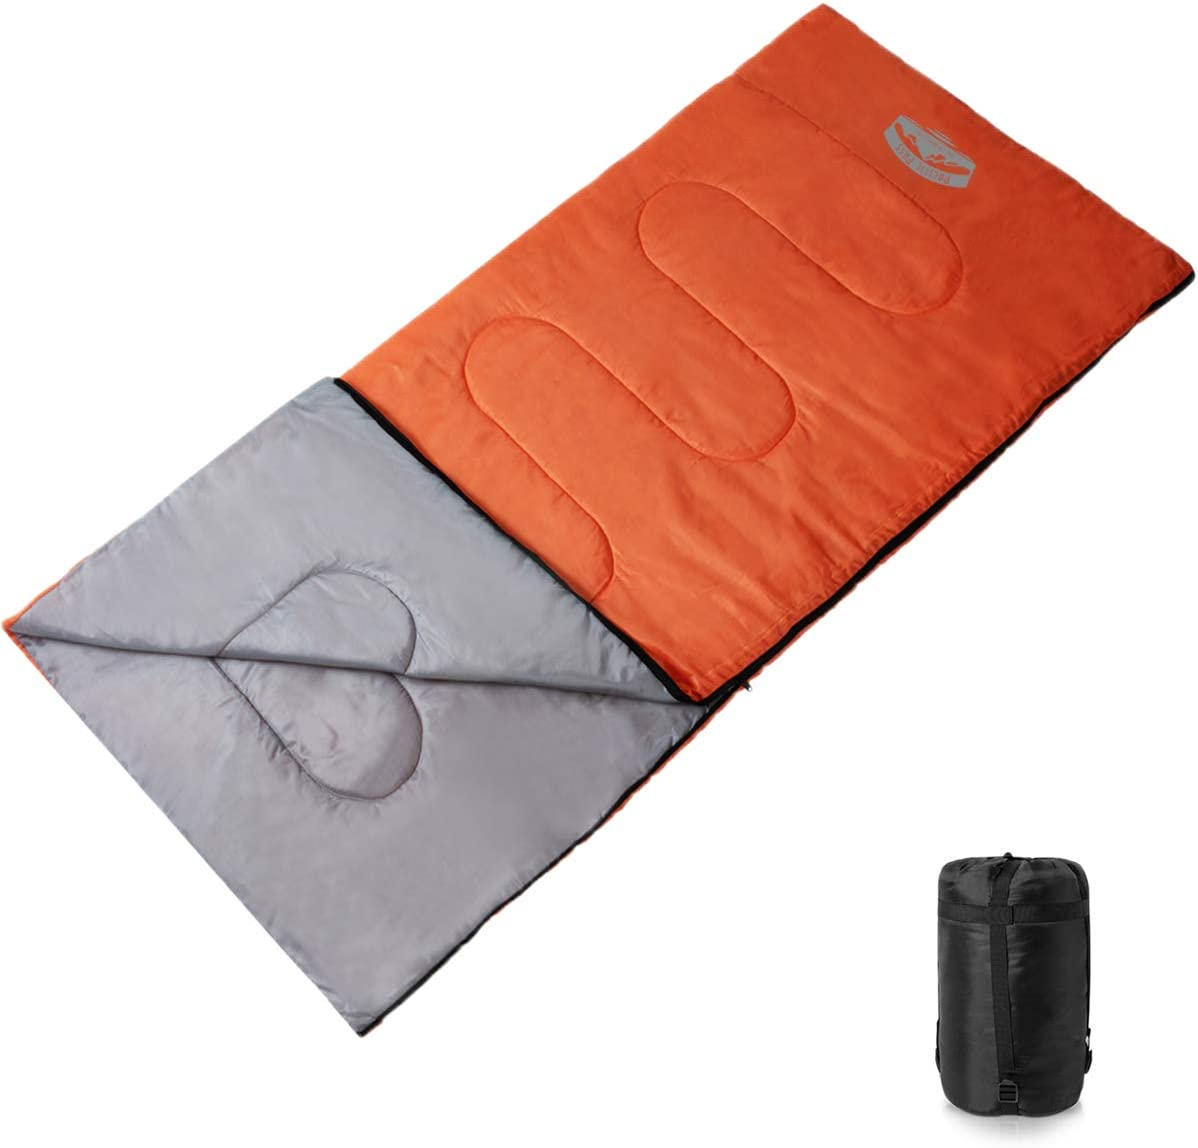 Pacific Pass Adult Sleeping Bag with Carry Bag Temperature 50 Degree